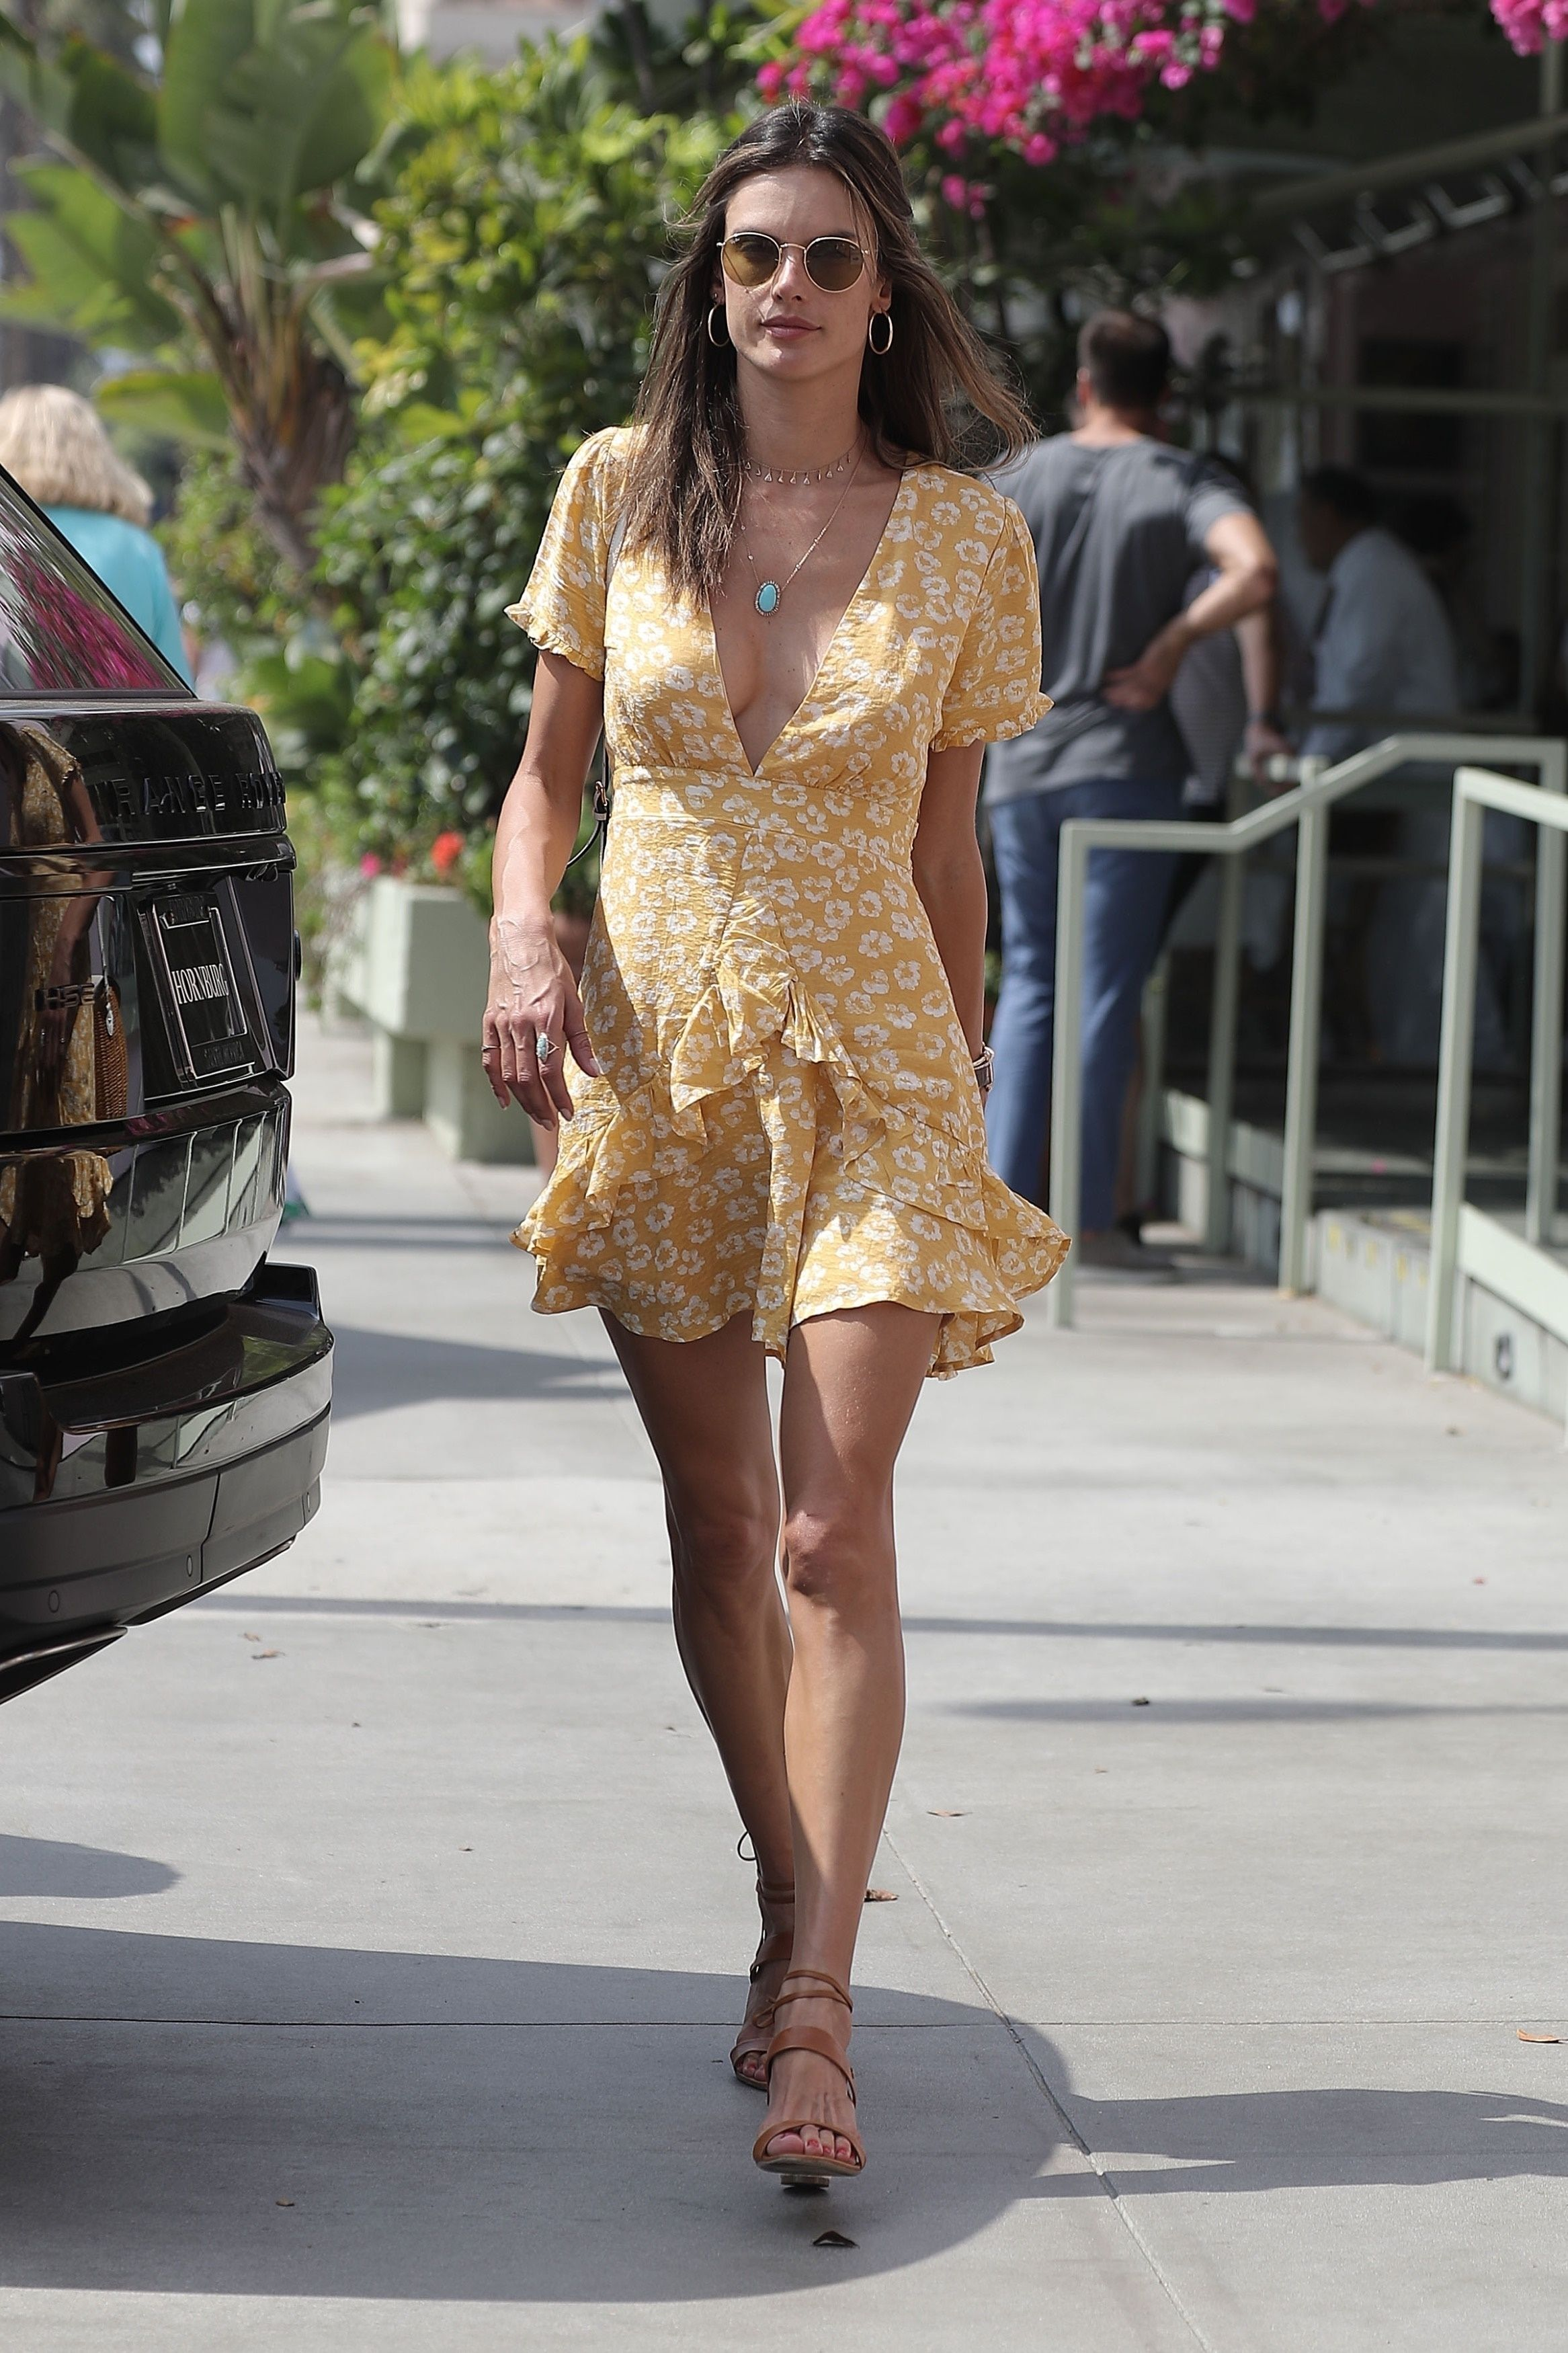 c086eeab671 Alessandra Ambrosio - Out for lunch in Santa Monica 8 16 18 ...